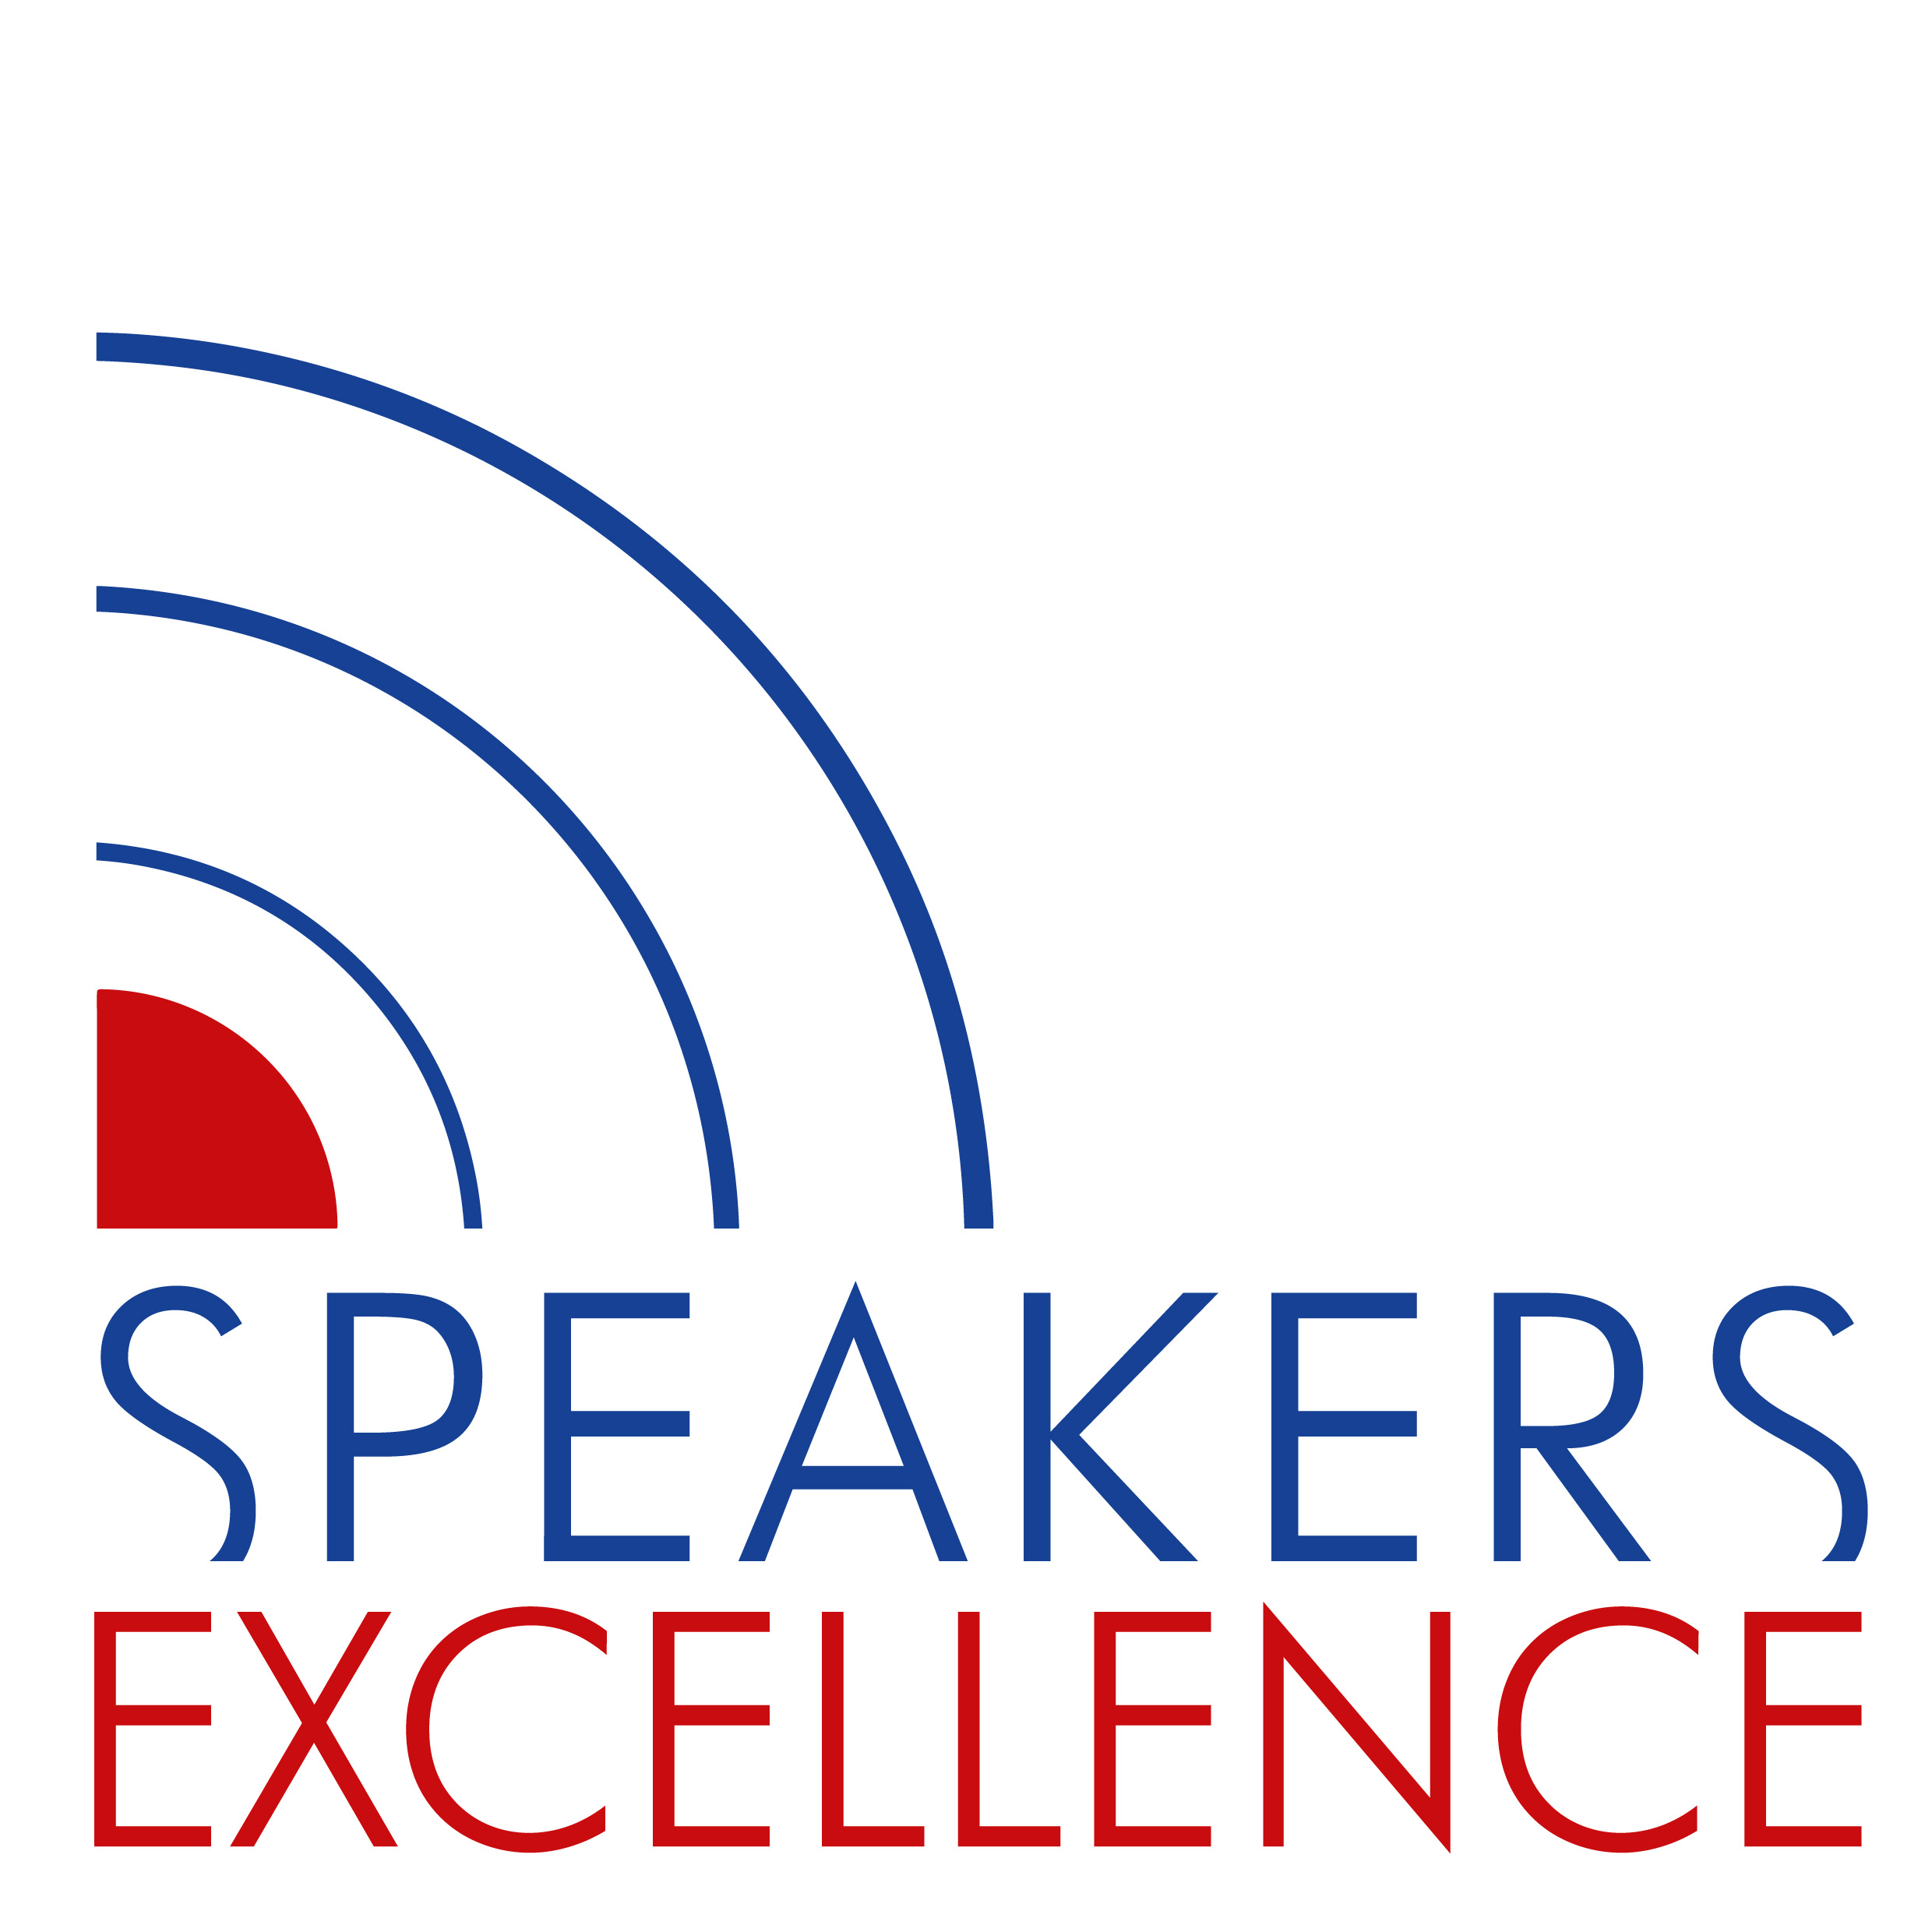 Helen Hain at Speakers Excellence